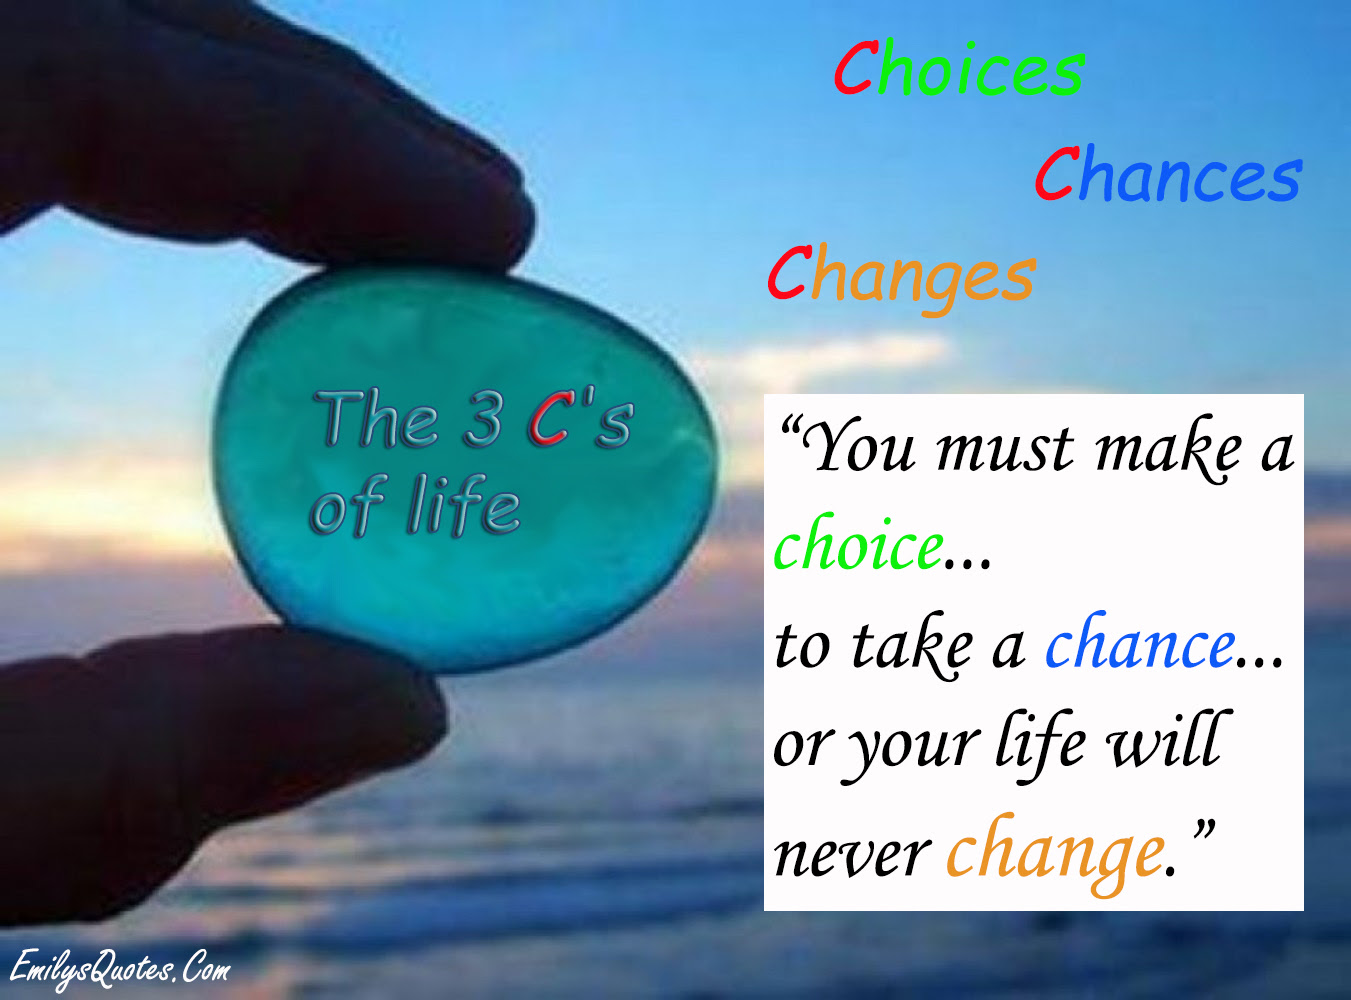 You Must Make A Choice To Take A Chance Or Your Life Will Never